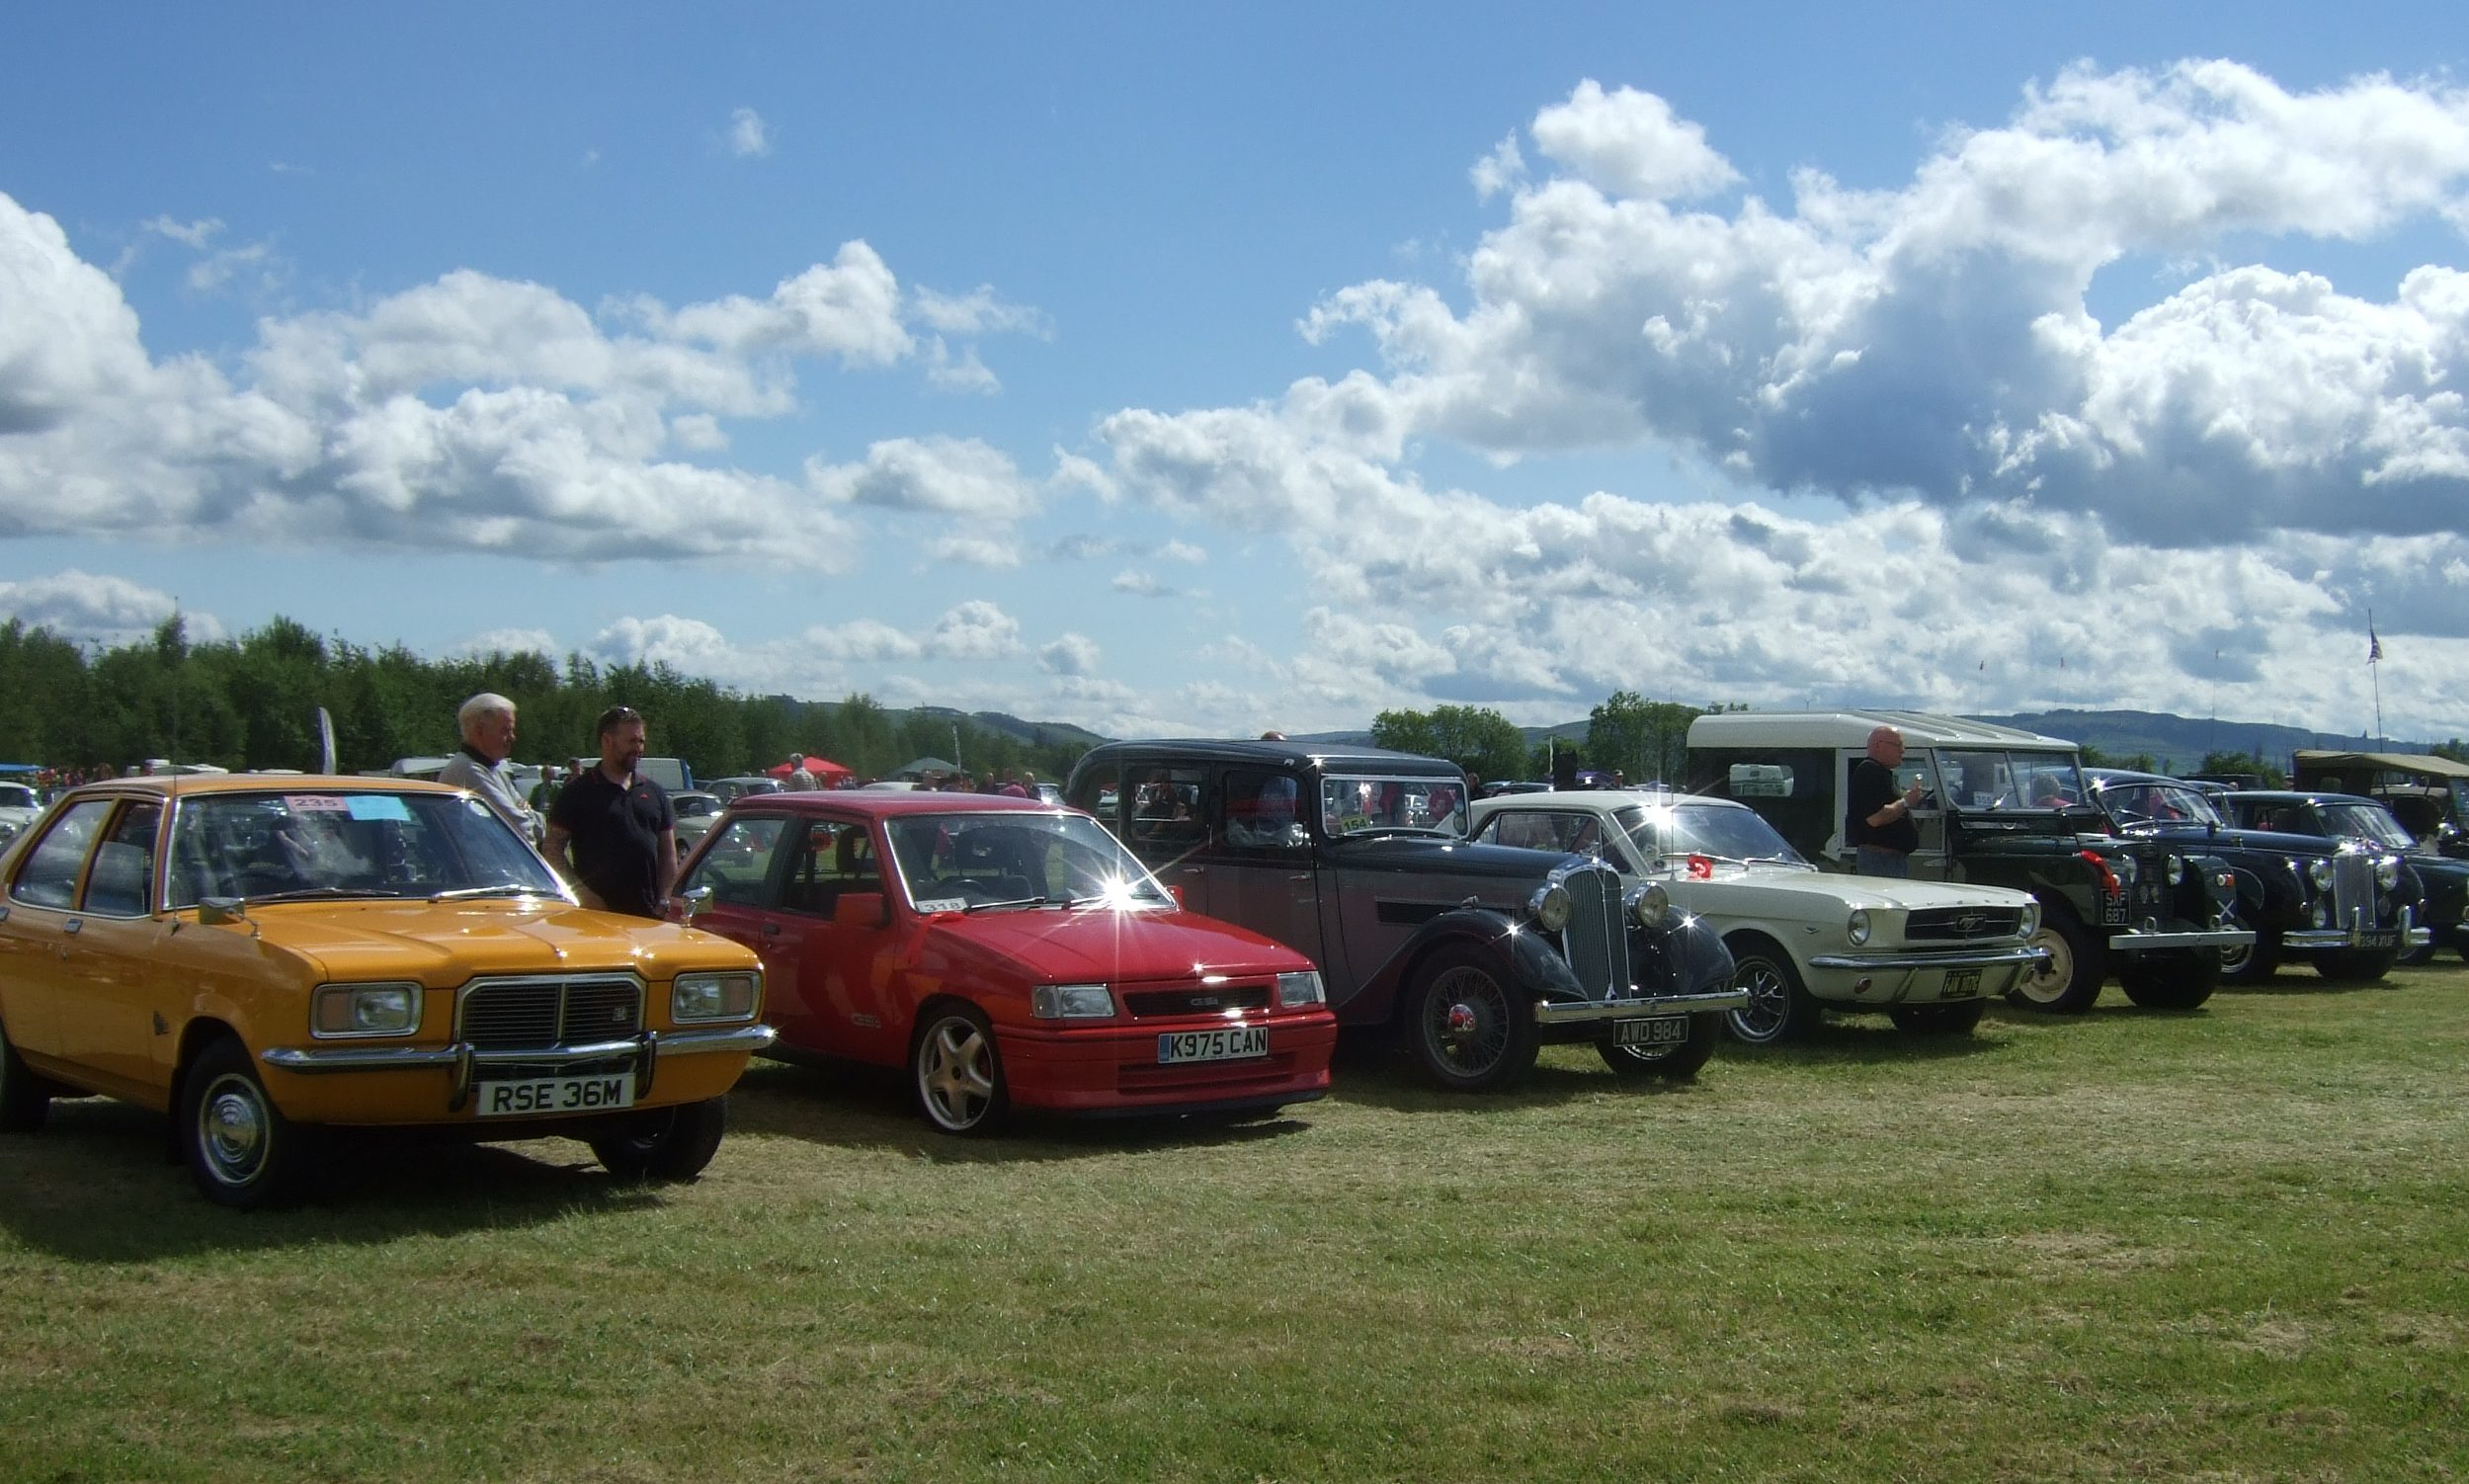 Last year's Tayside Classic Motor Show was blessed with sunshine.